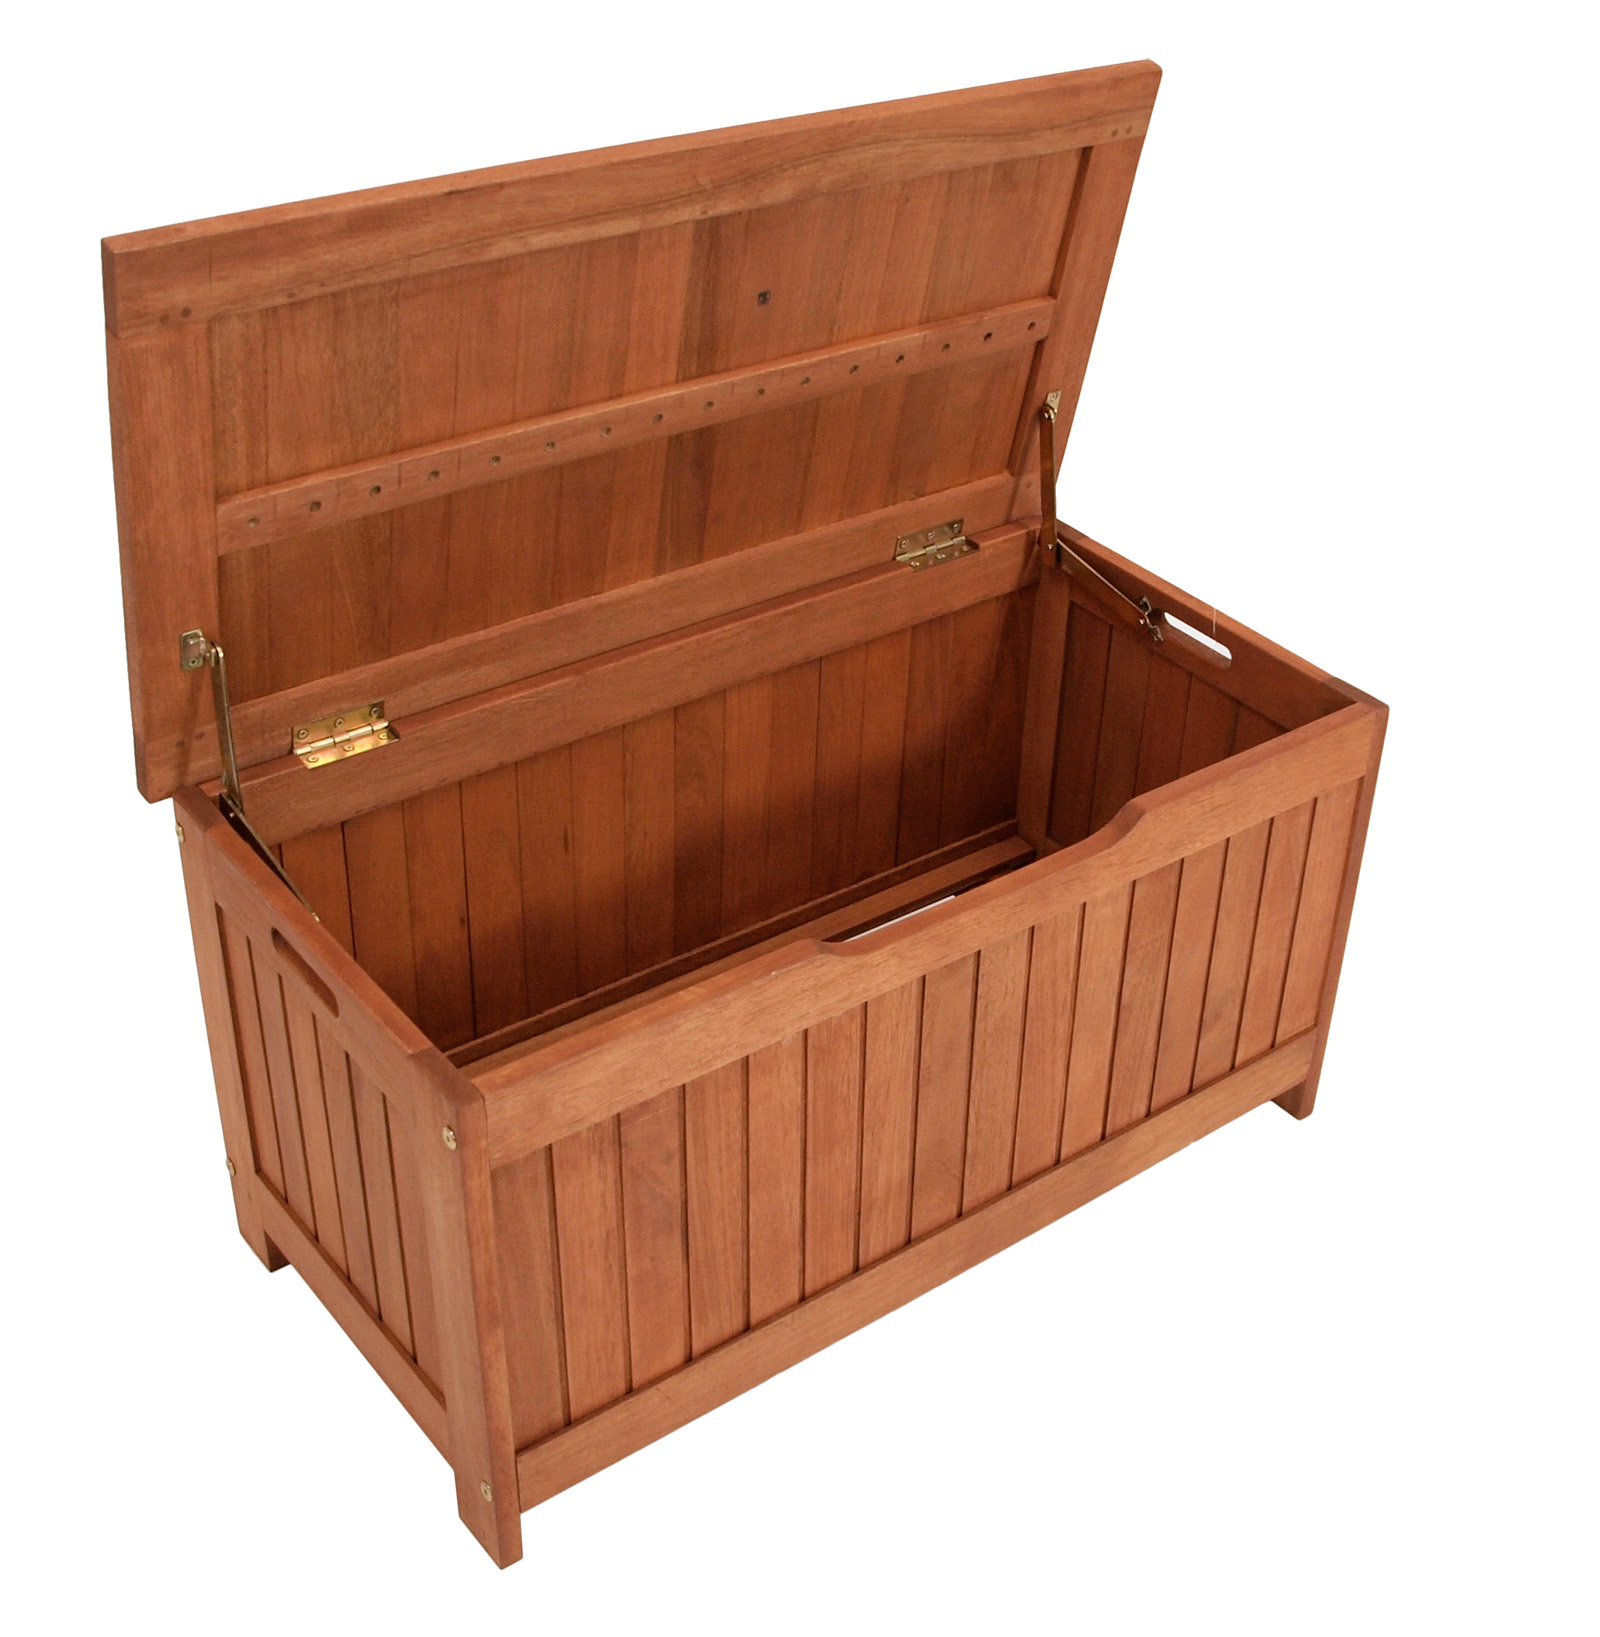 auflagenbox holz kissenbox gartenbox kissentruhe gartentruhe comodoro 88x45cm ebay. Black Bedroom Furniture Sets. Home Design Ideas